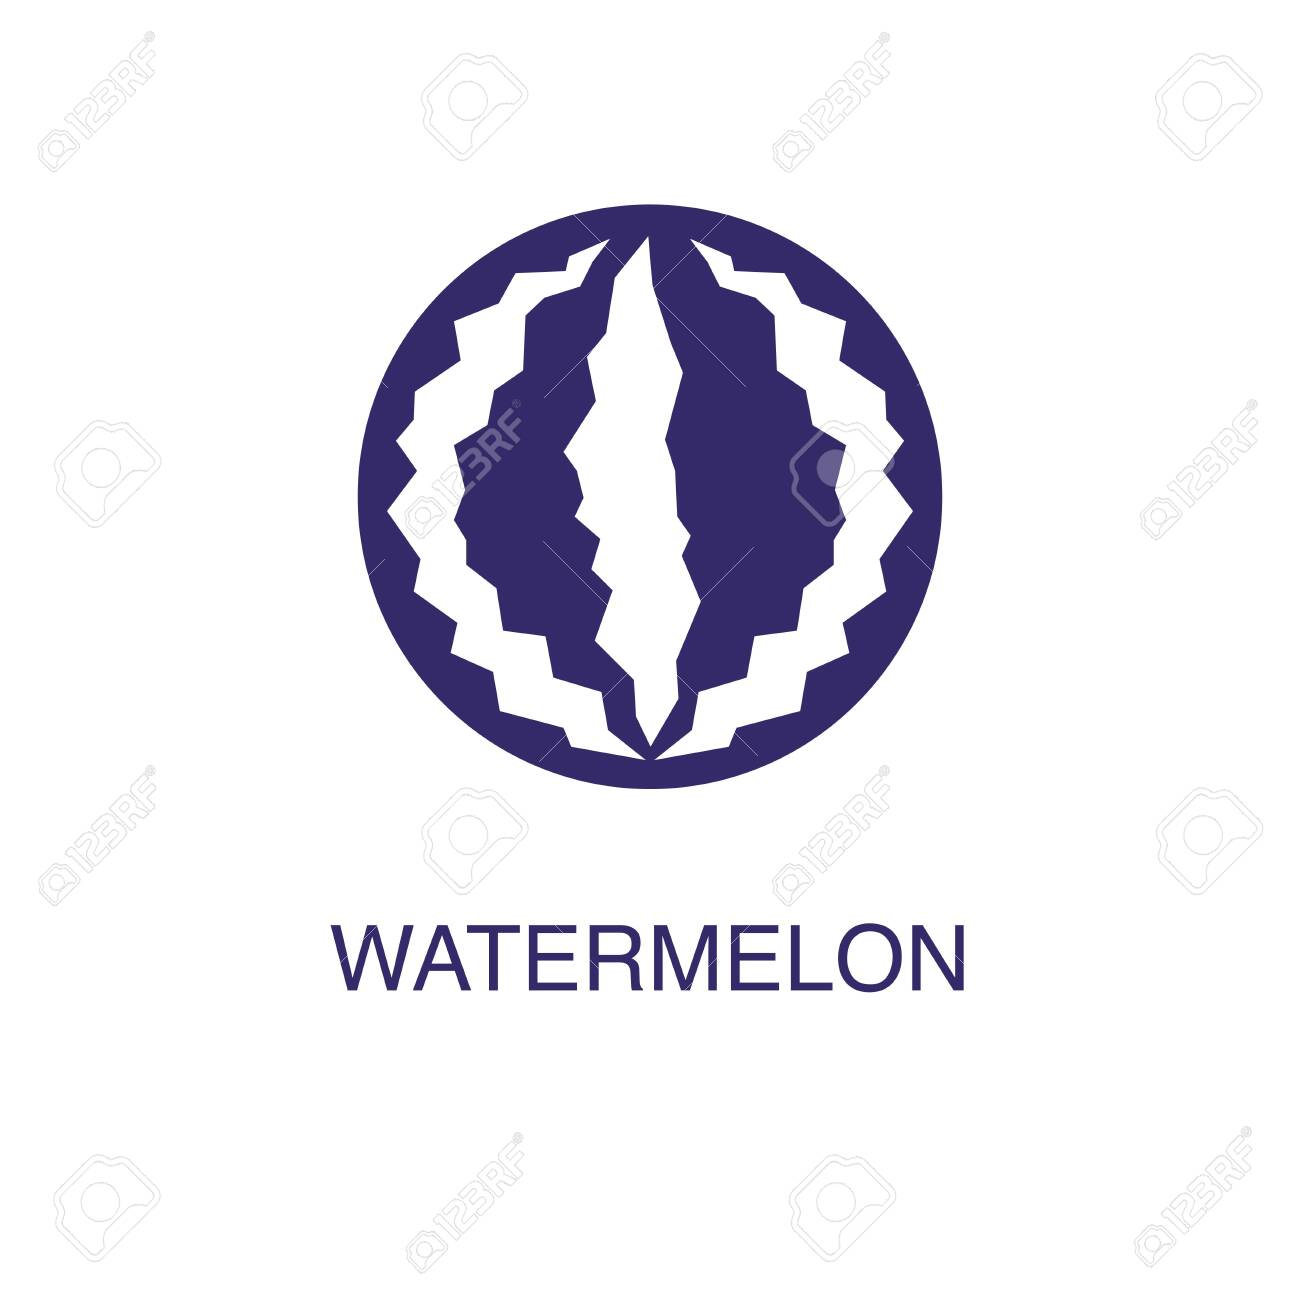 Watermelon element in flat simple style on white background. Watermelon icon, with text name concept template - 134450692